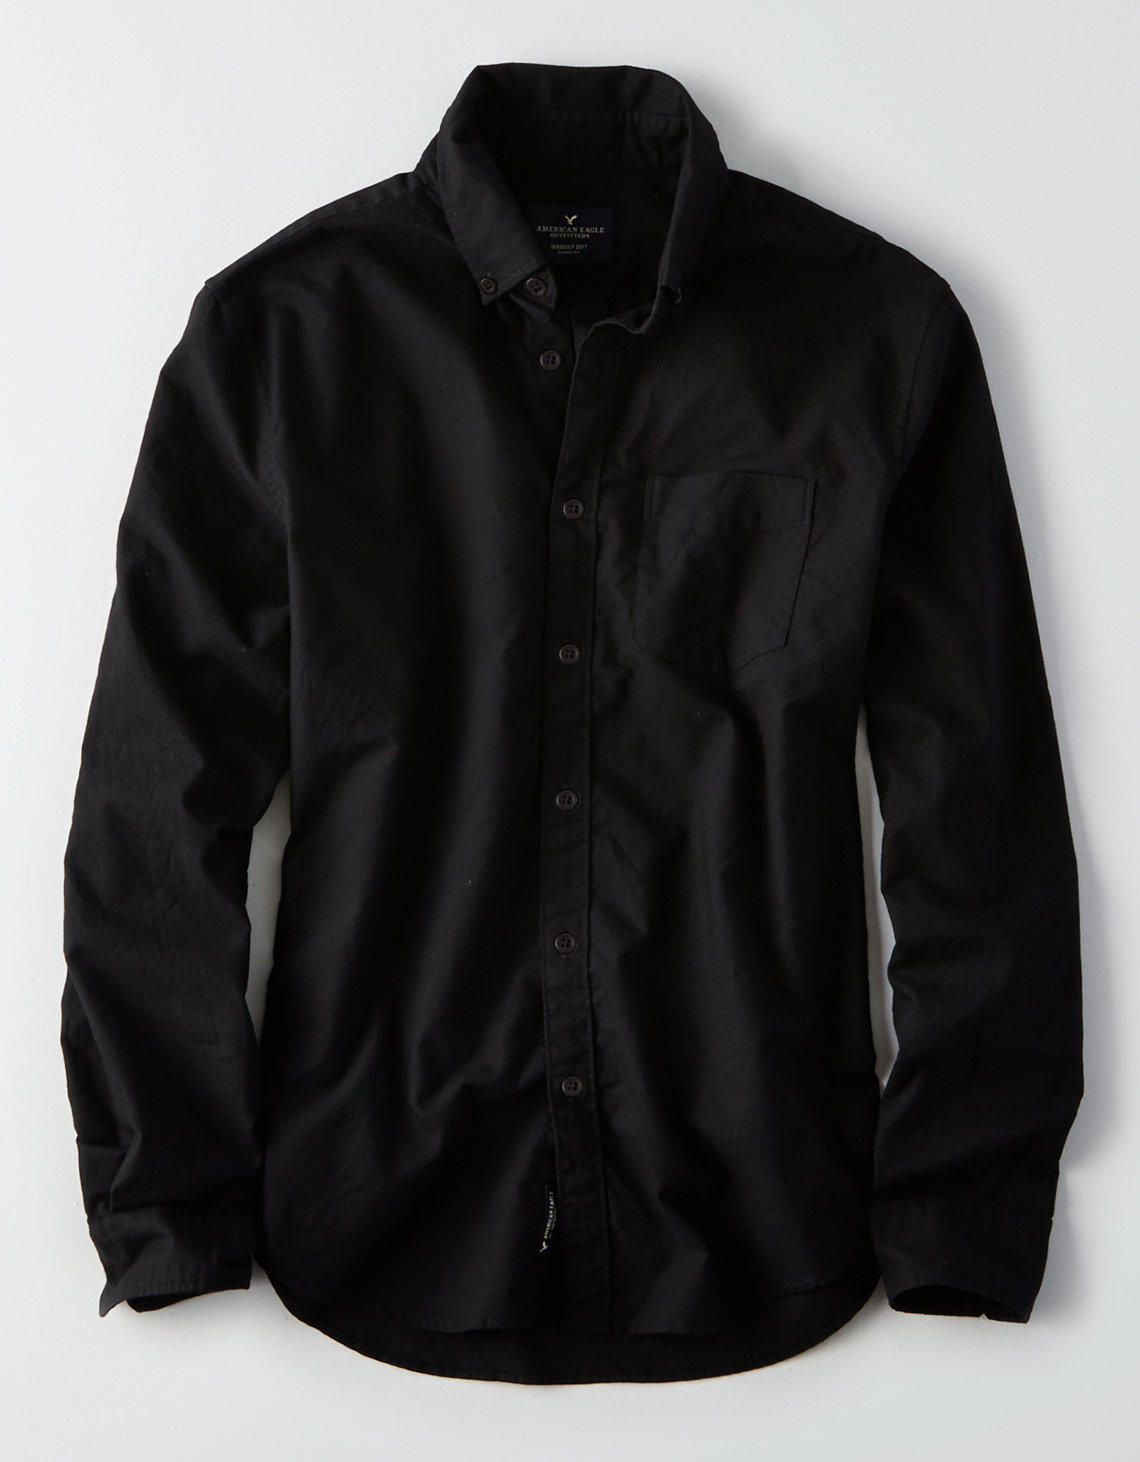 AE Classic Button Down Oxford Shirt, Black | American Eagle Outfitters